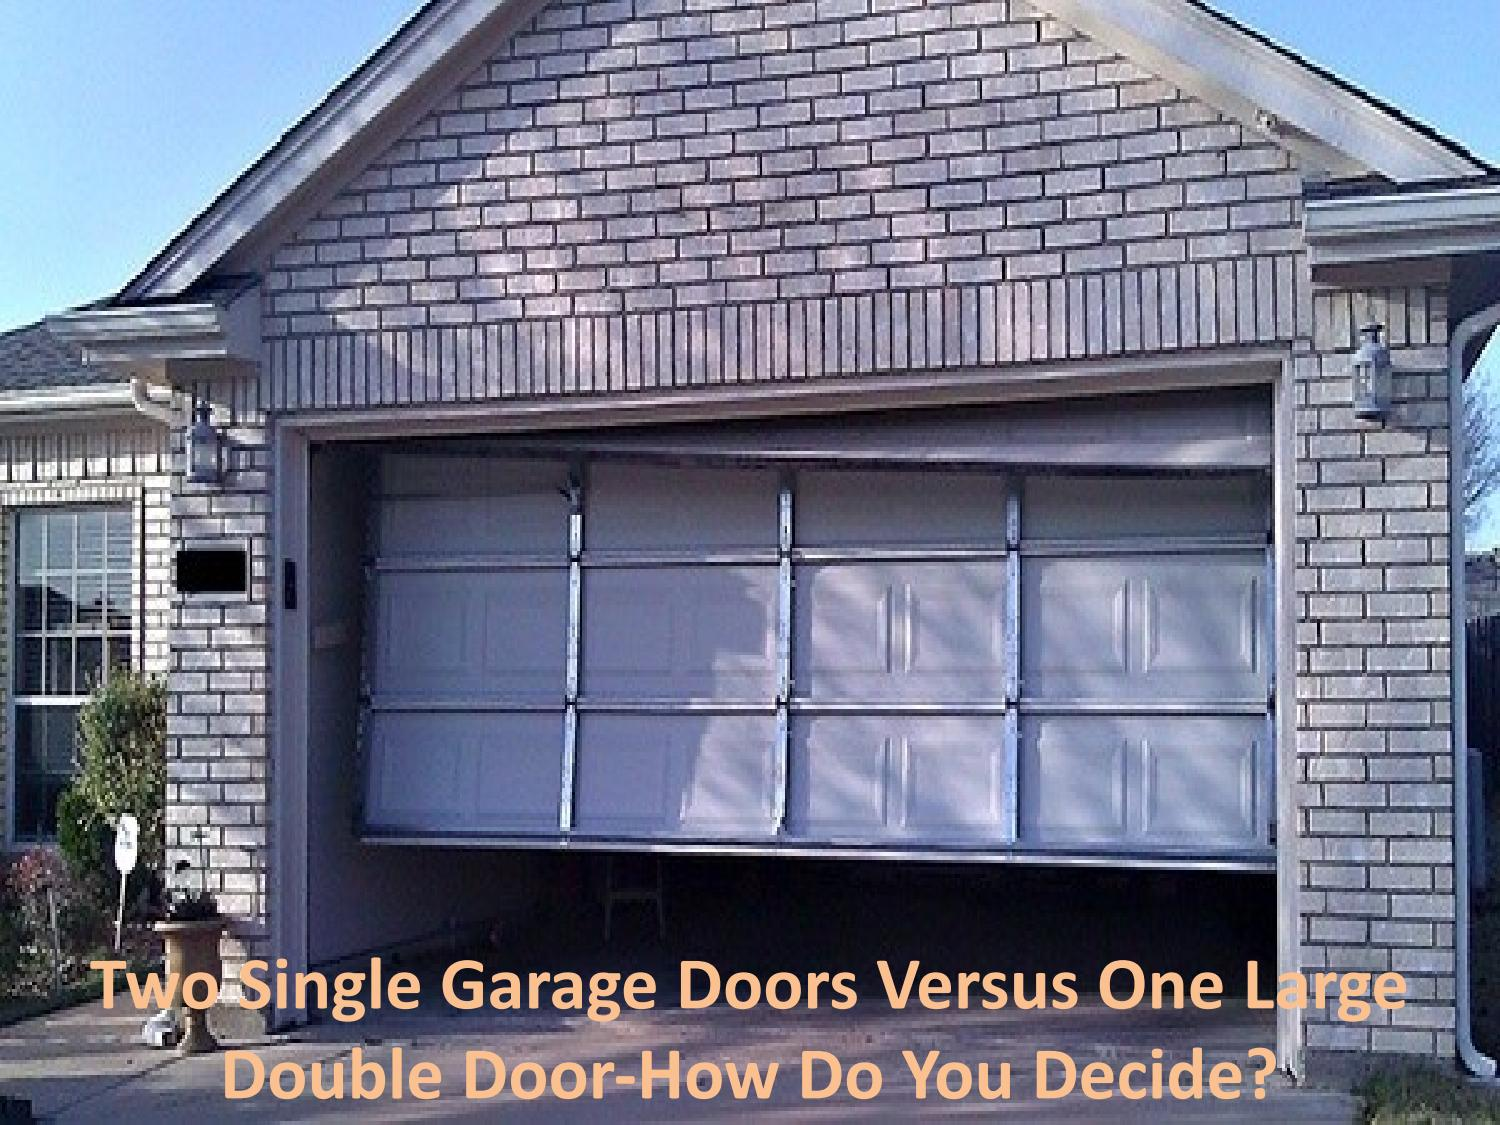 Two Single Garage Doors Versus One Large Double Door How Do You Decide By Sourabh Issuu